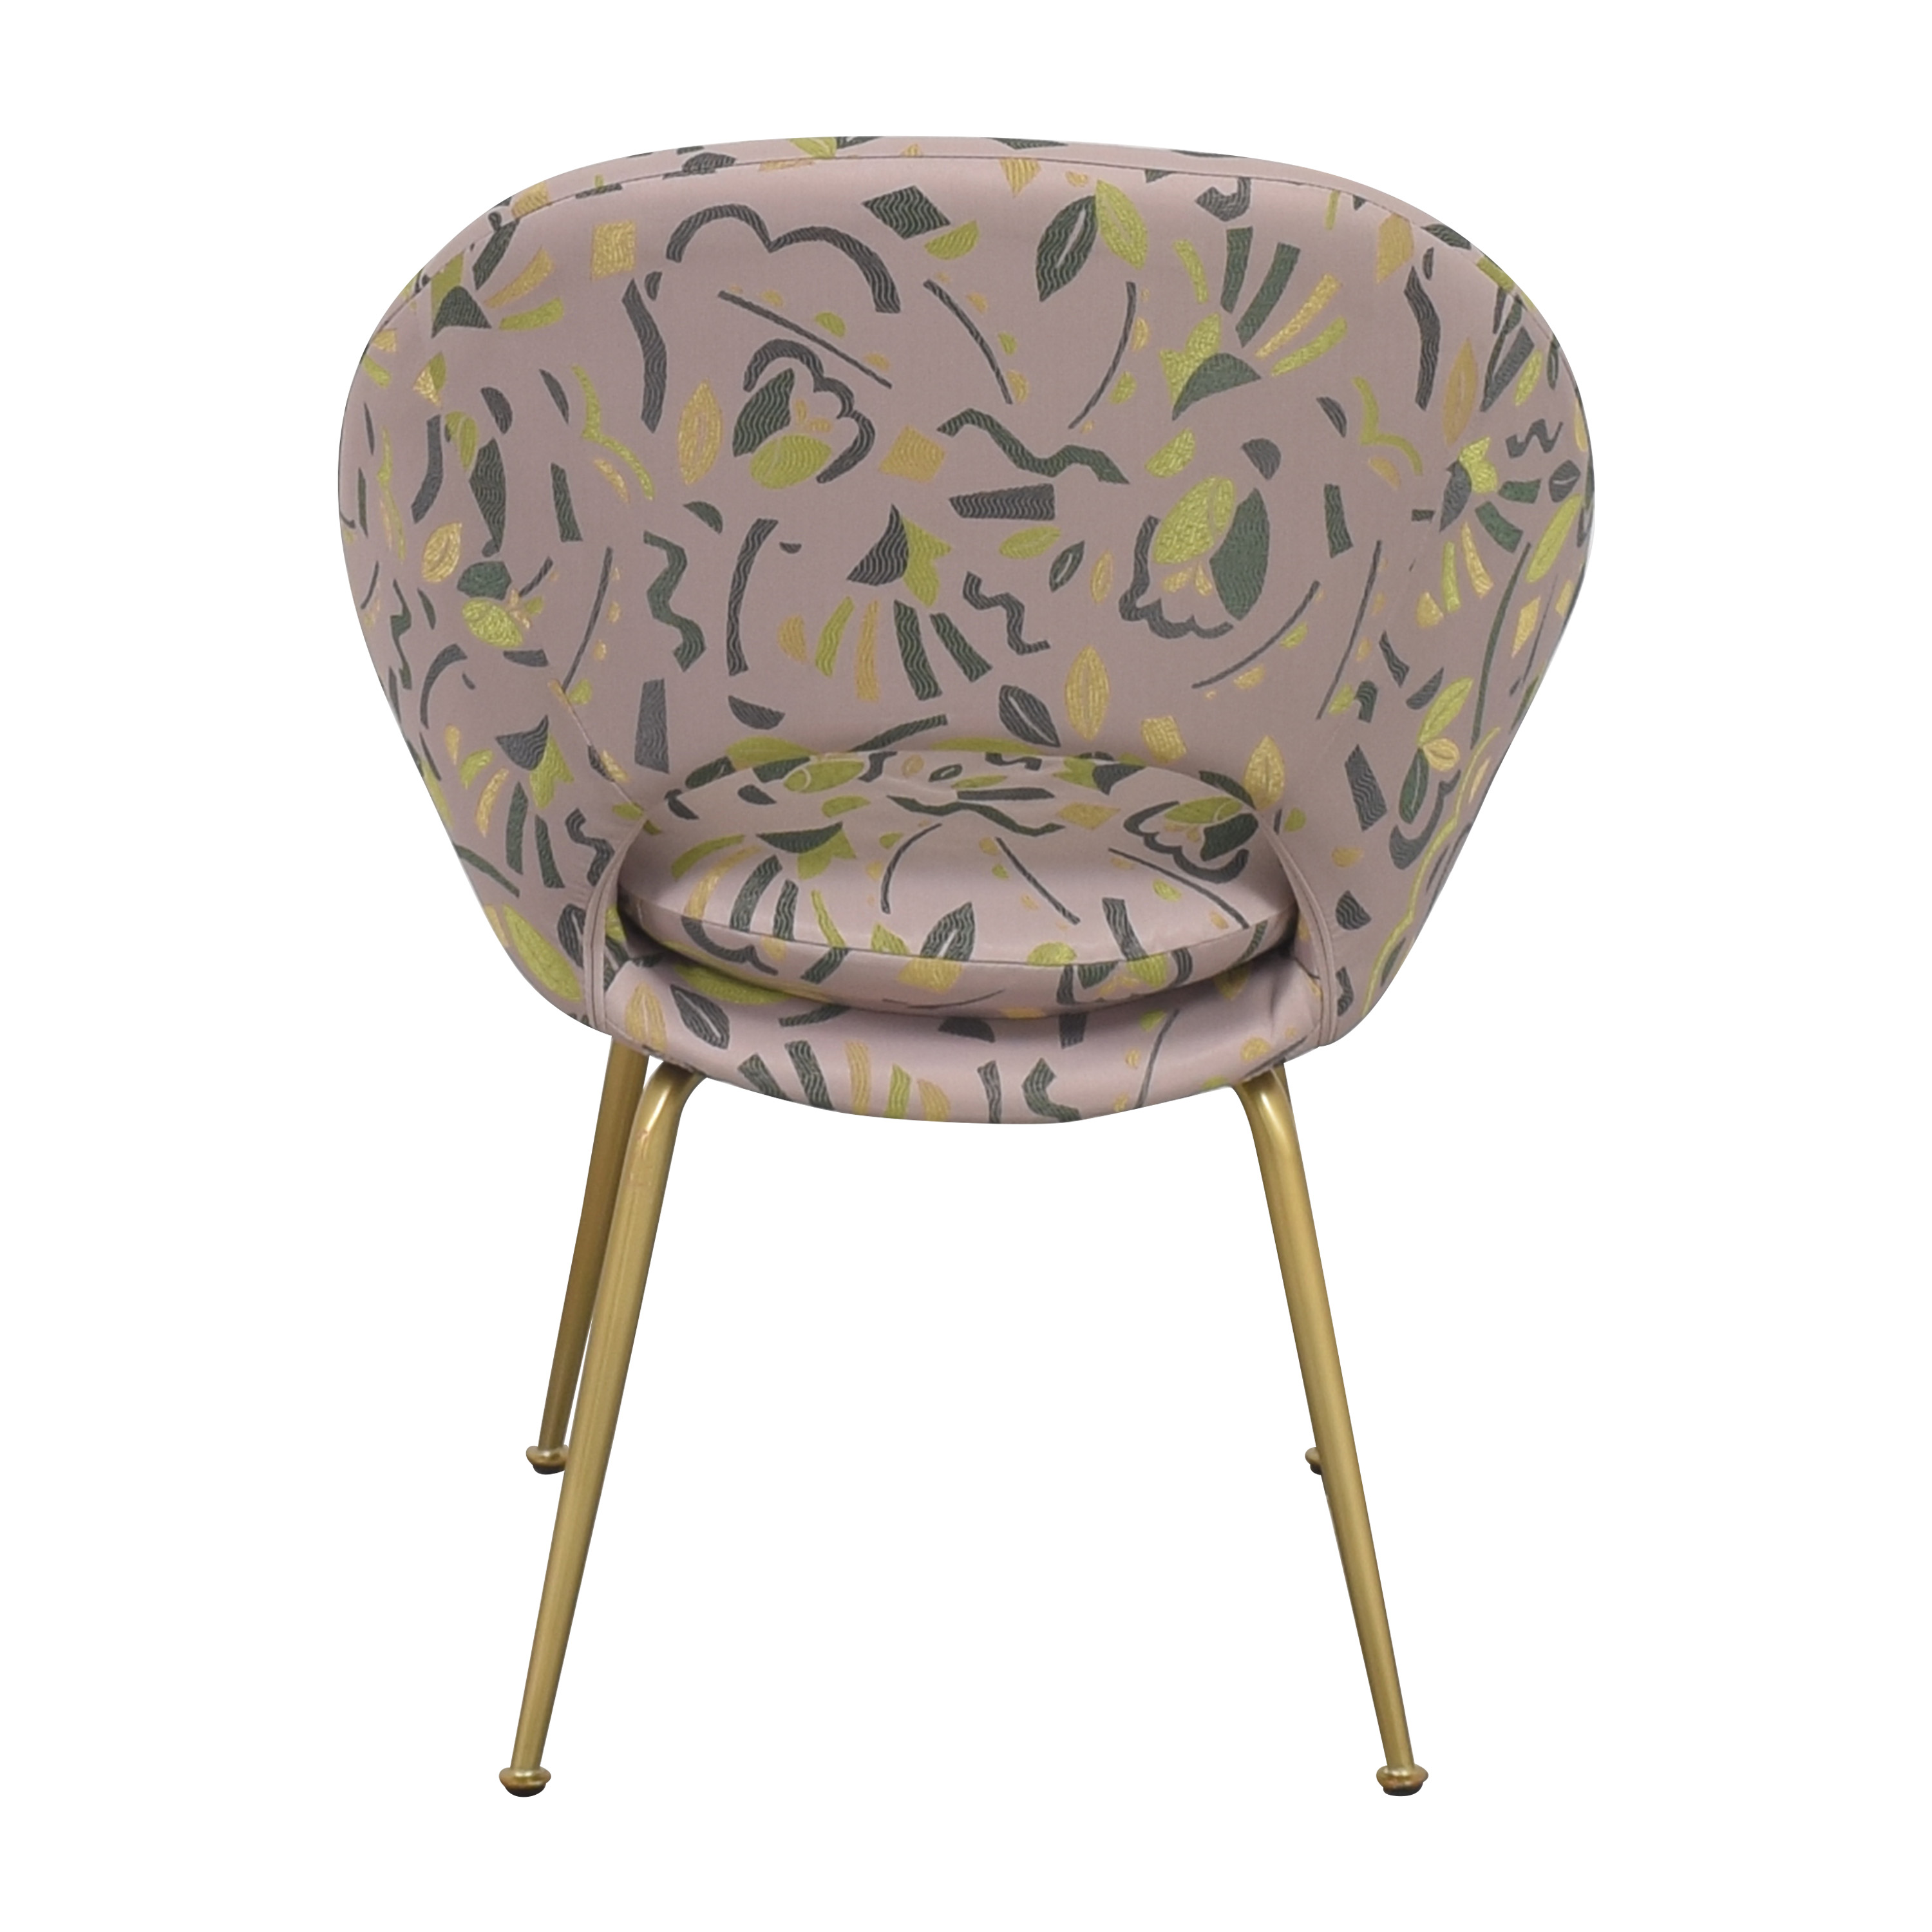 West Elm West Elm Orb Upholstered Chair Accent Chairs